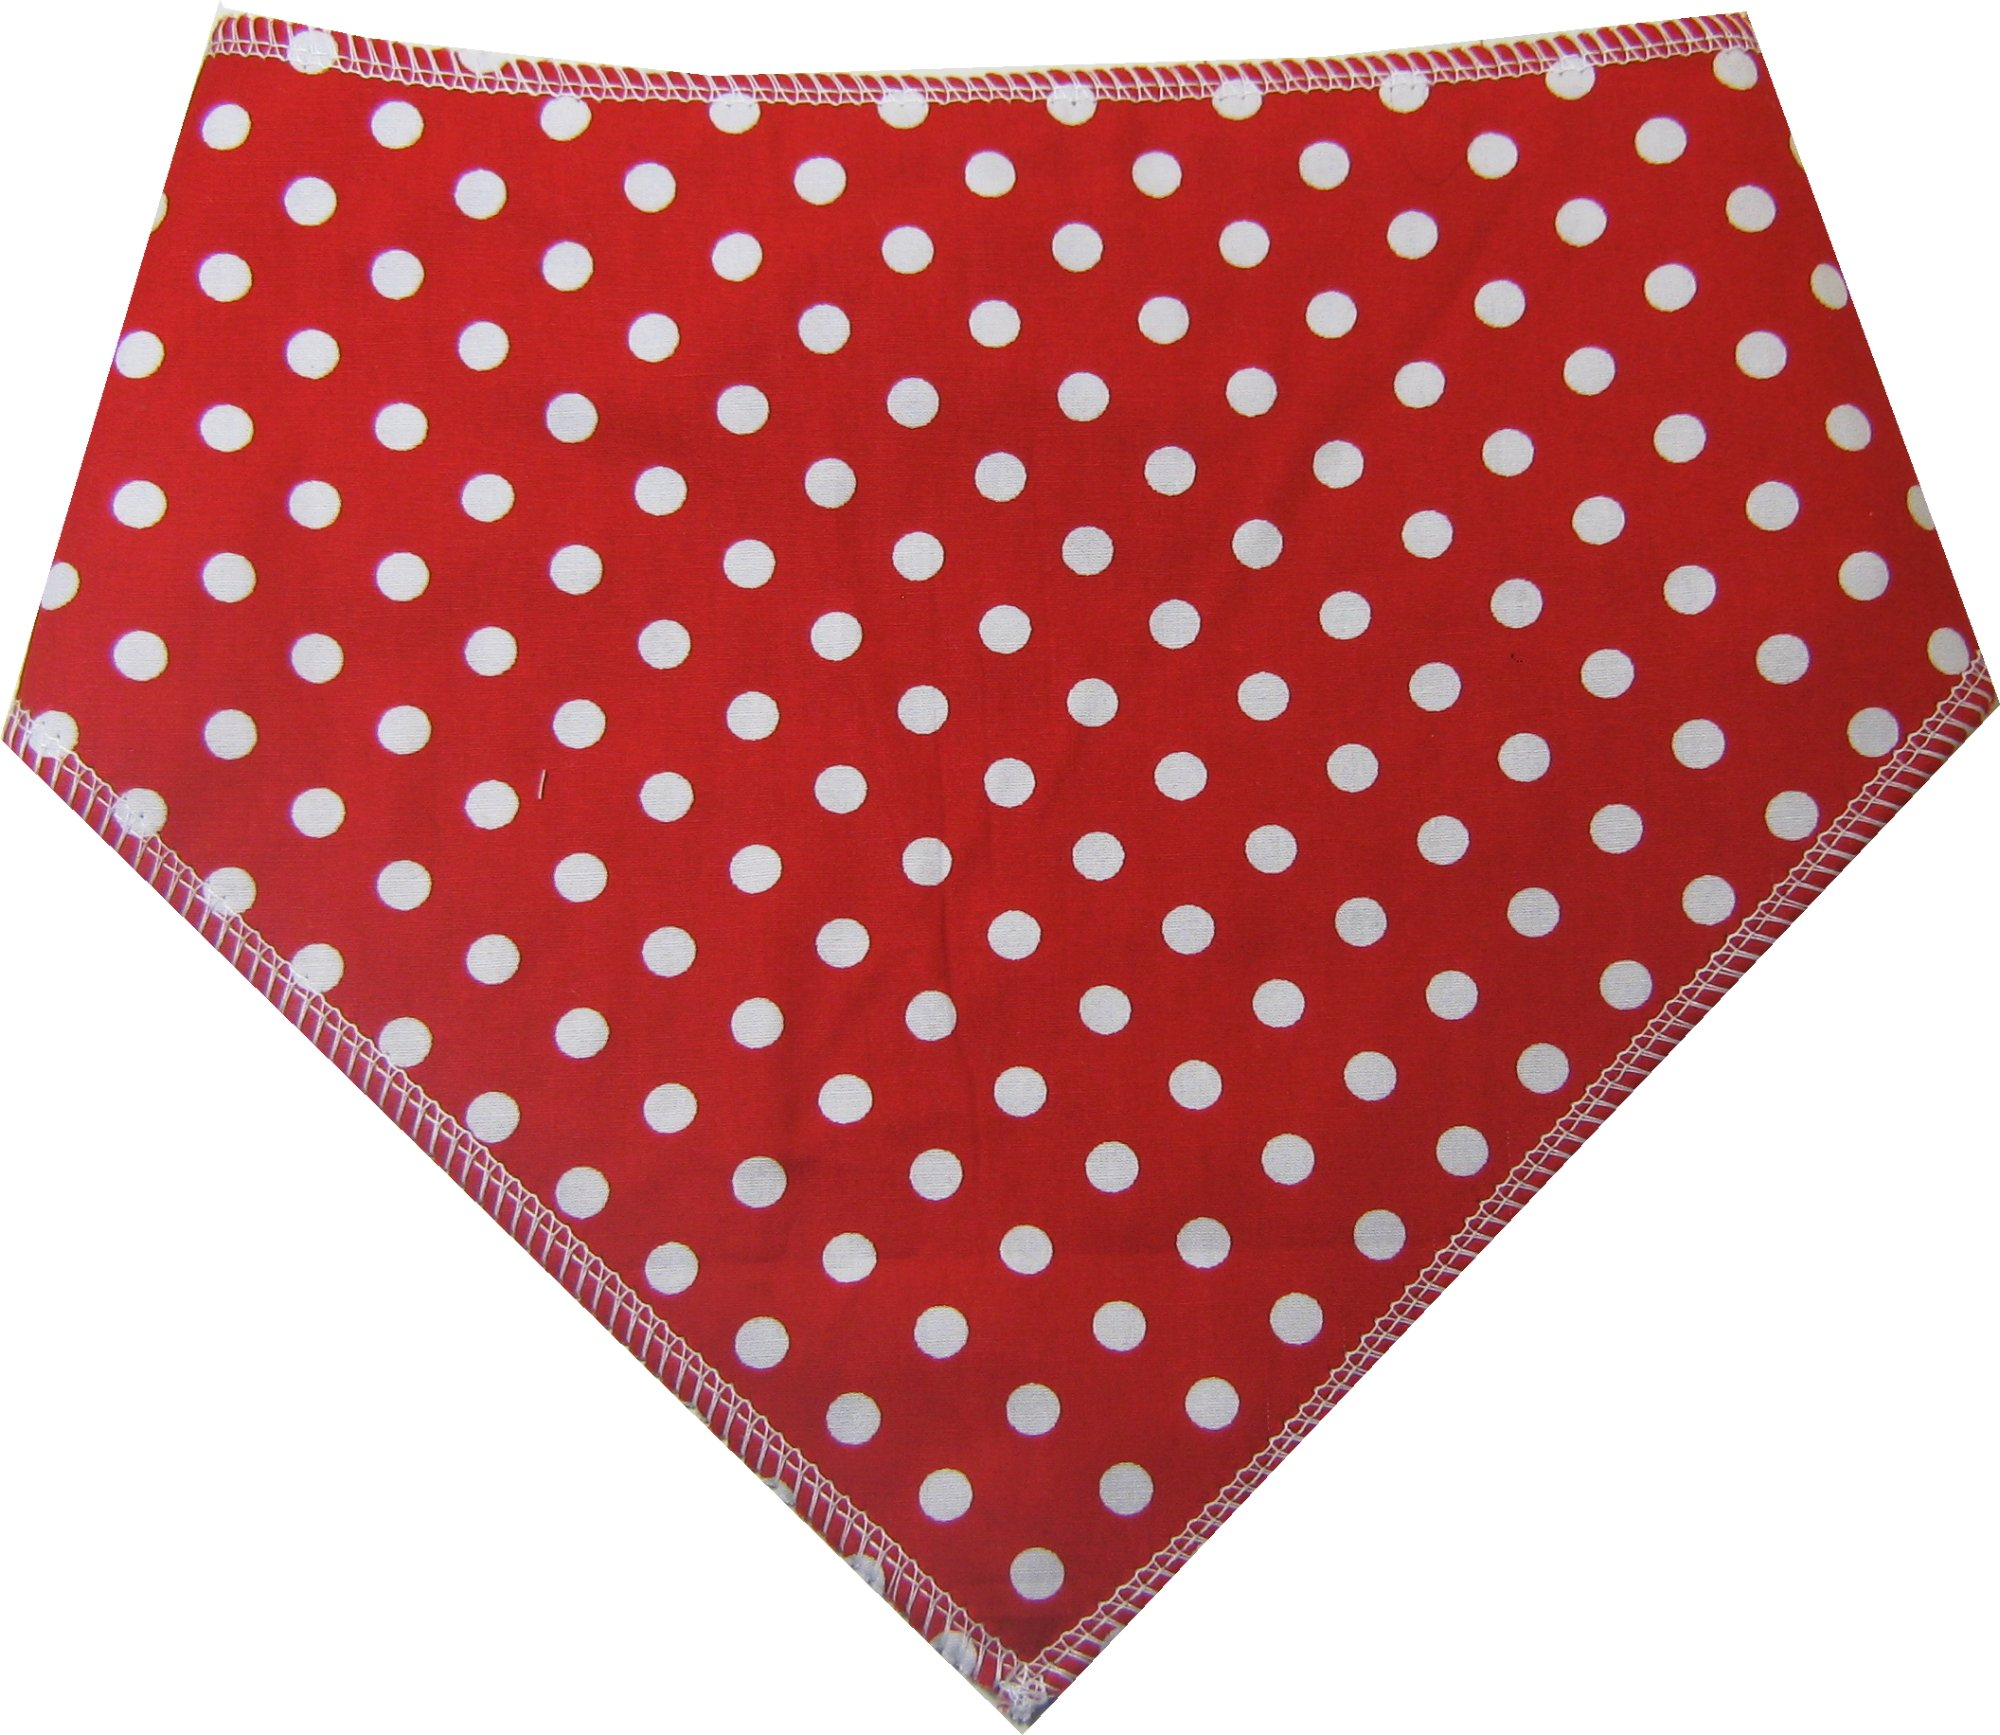 Spoilt Rotten Pet (S4) Vintage Style RED Polka Dot Dog Bandana. Large Size Generally Fits Rottweilers and St Bernard Sized Dogs. Neck Size 23″ to 28″ Gorgeous Range of Patterns & Colours.